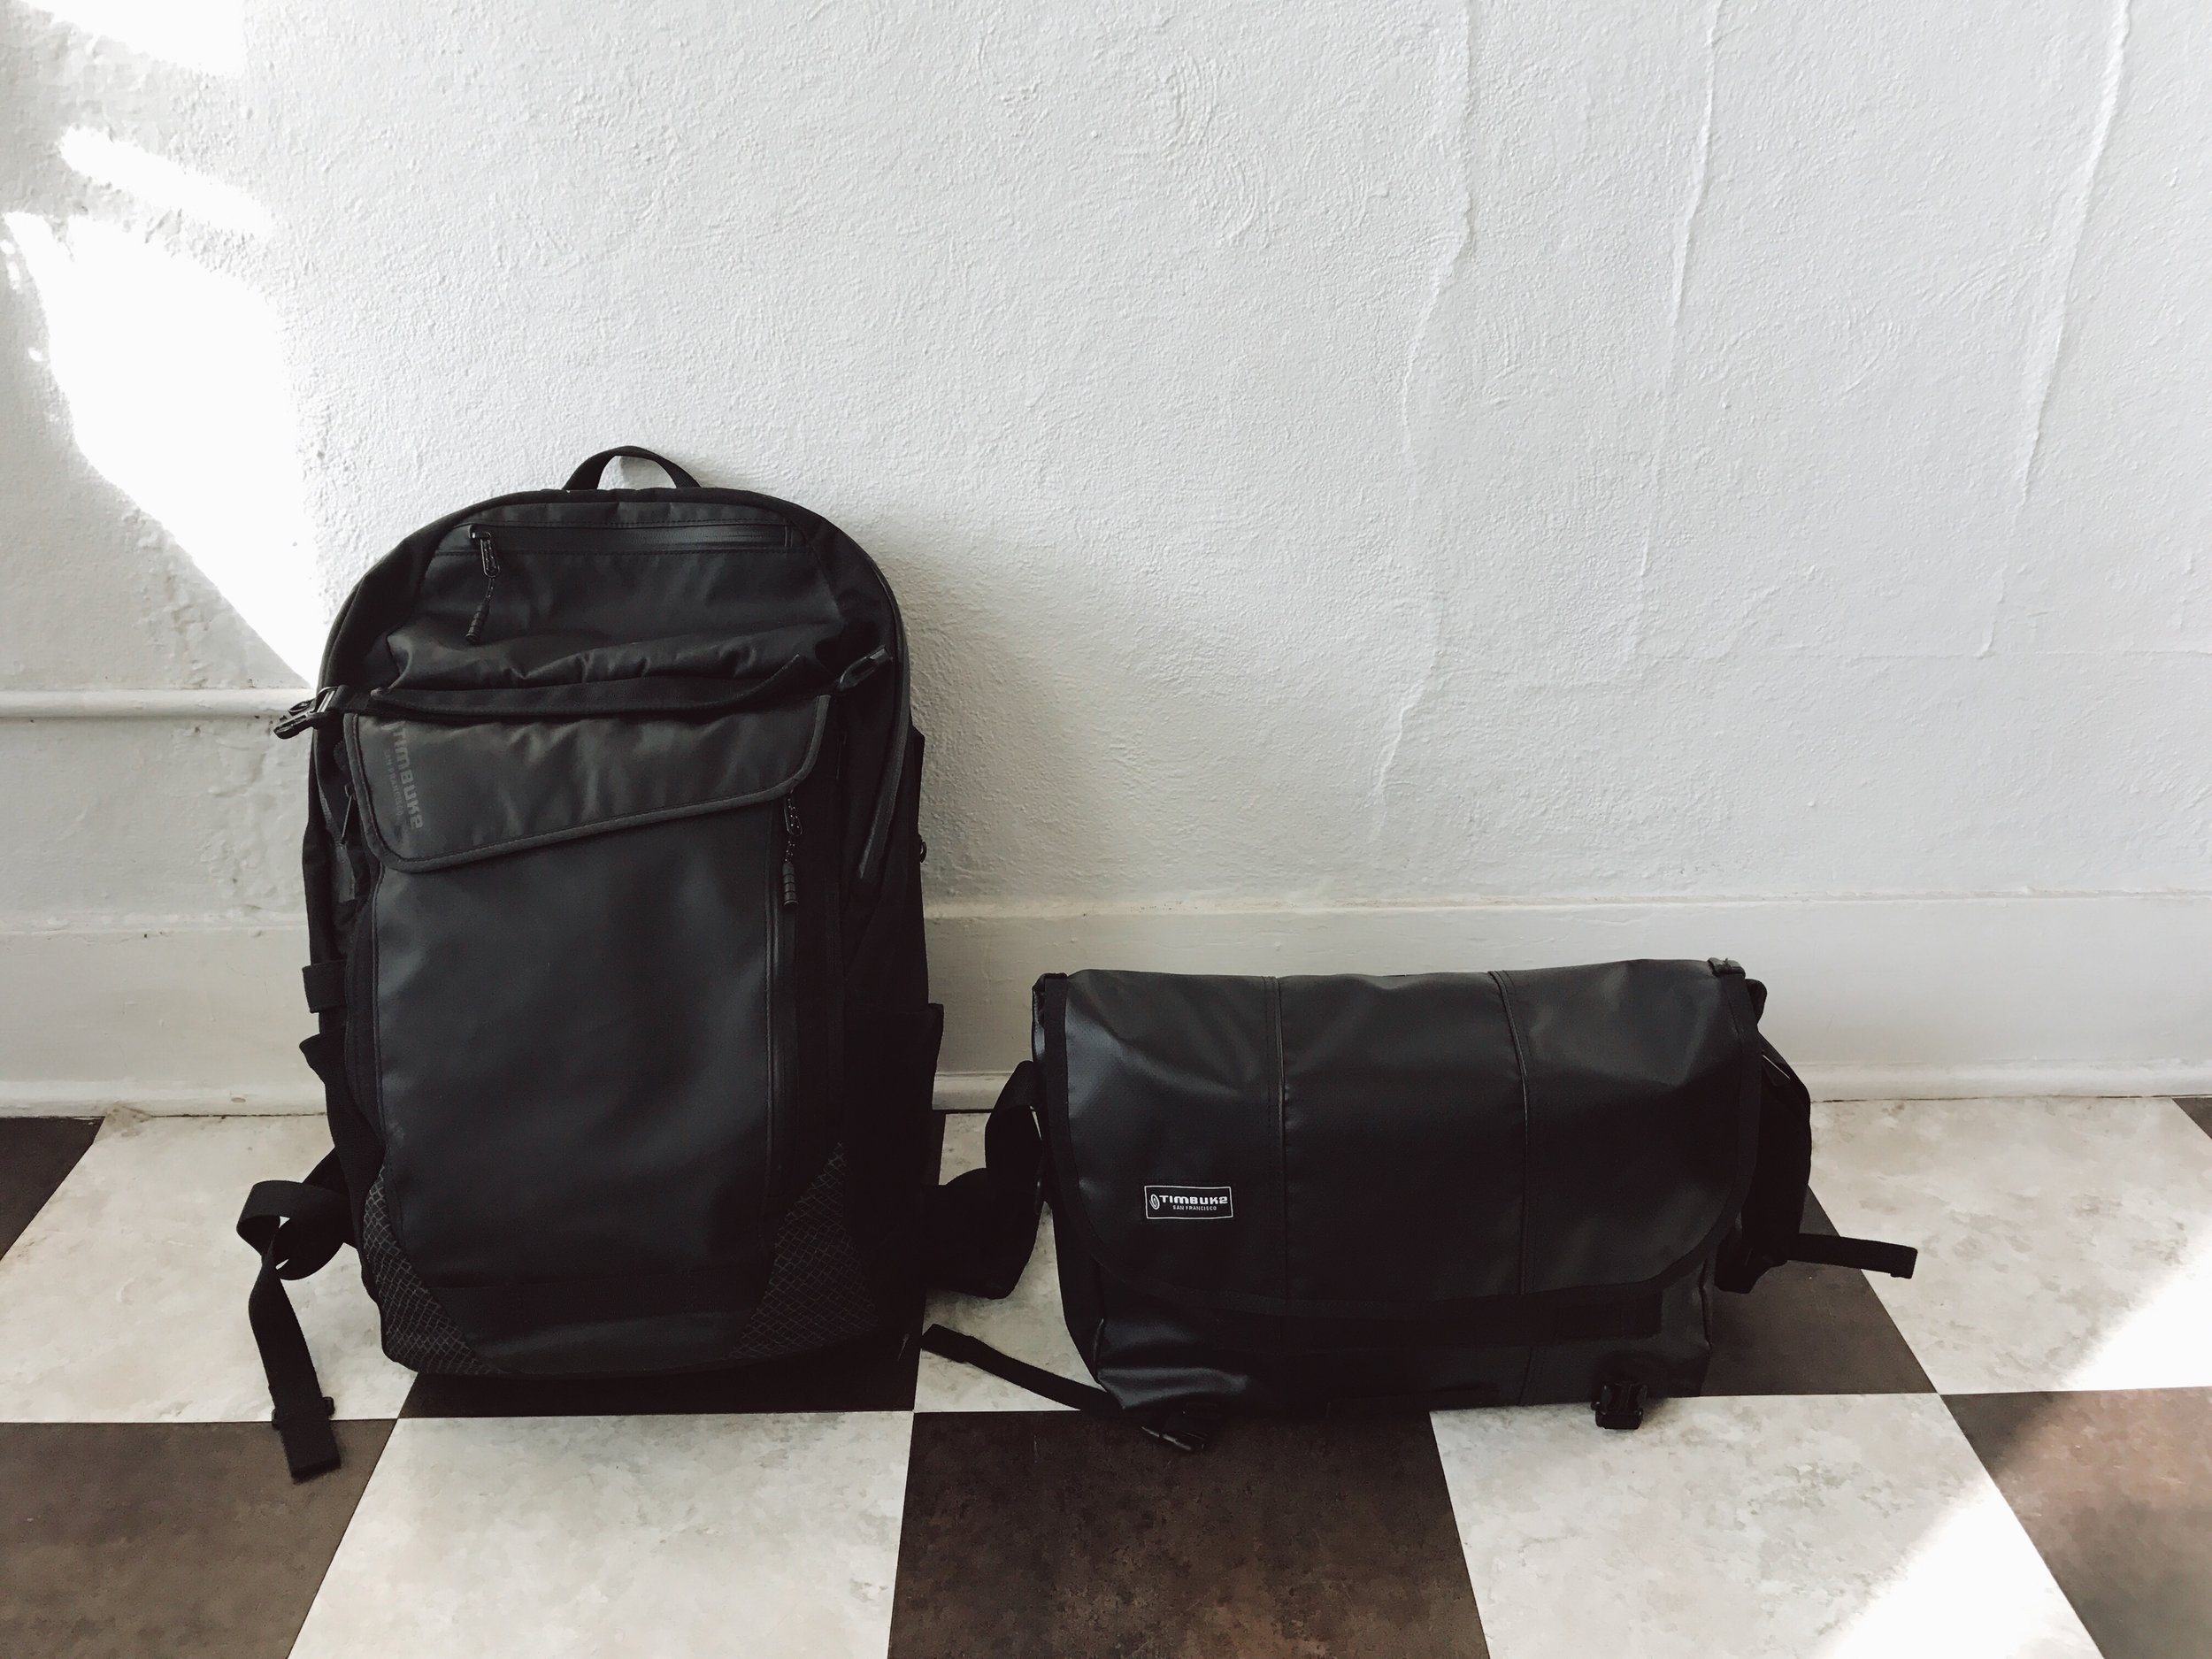 Timbuk2 Backpack + Messenger